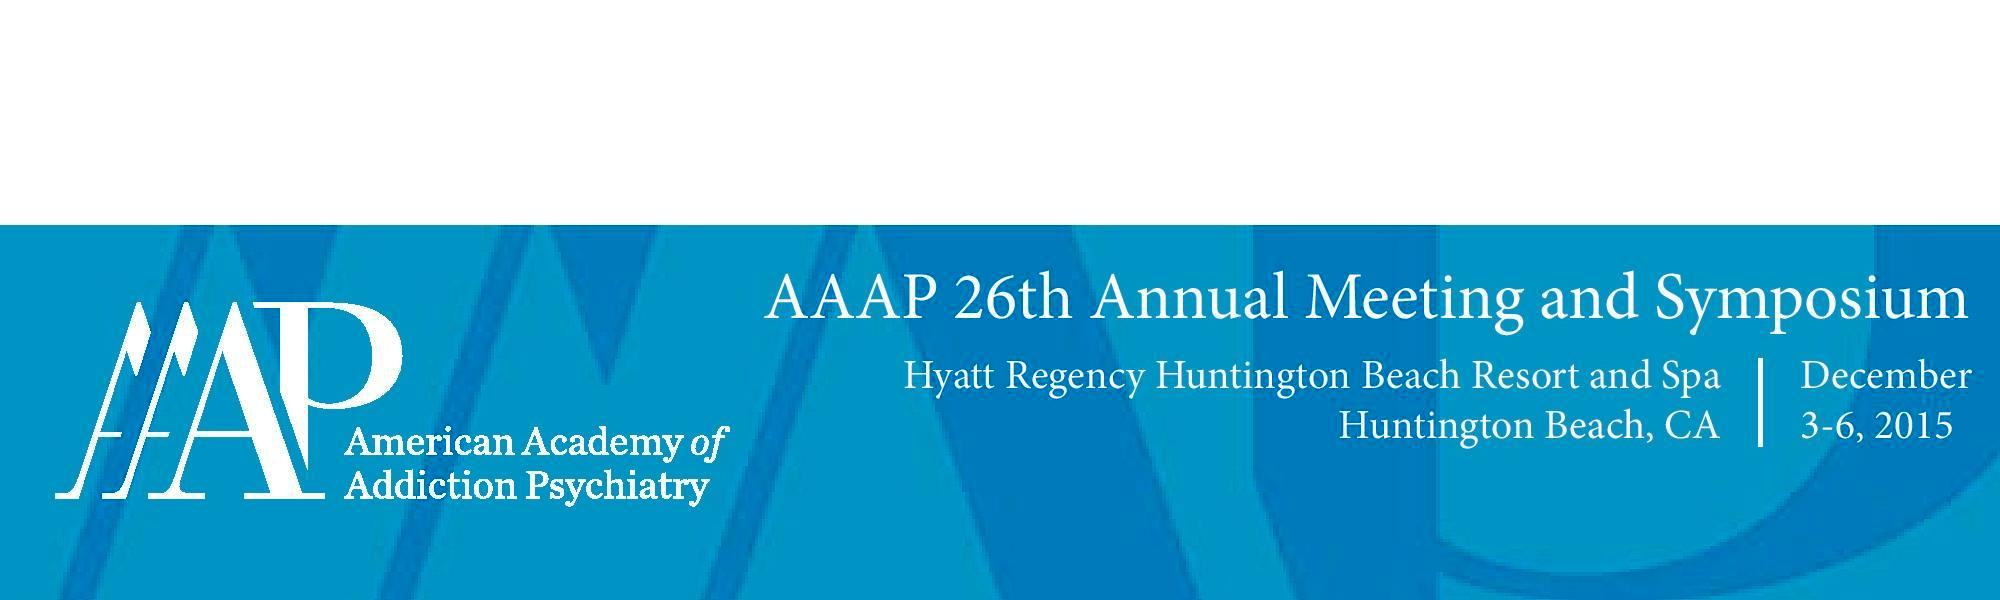 2015_Annual_Meeting_email_header_v._3